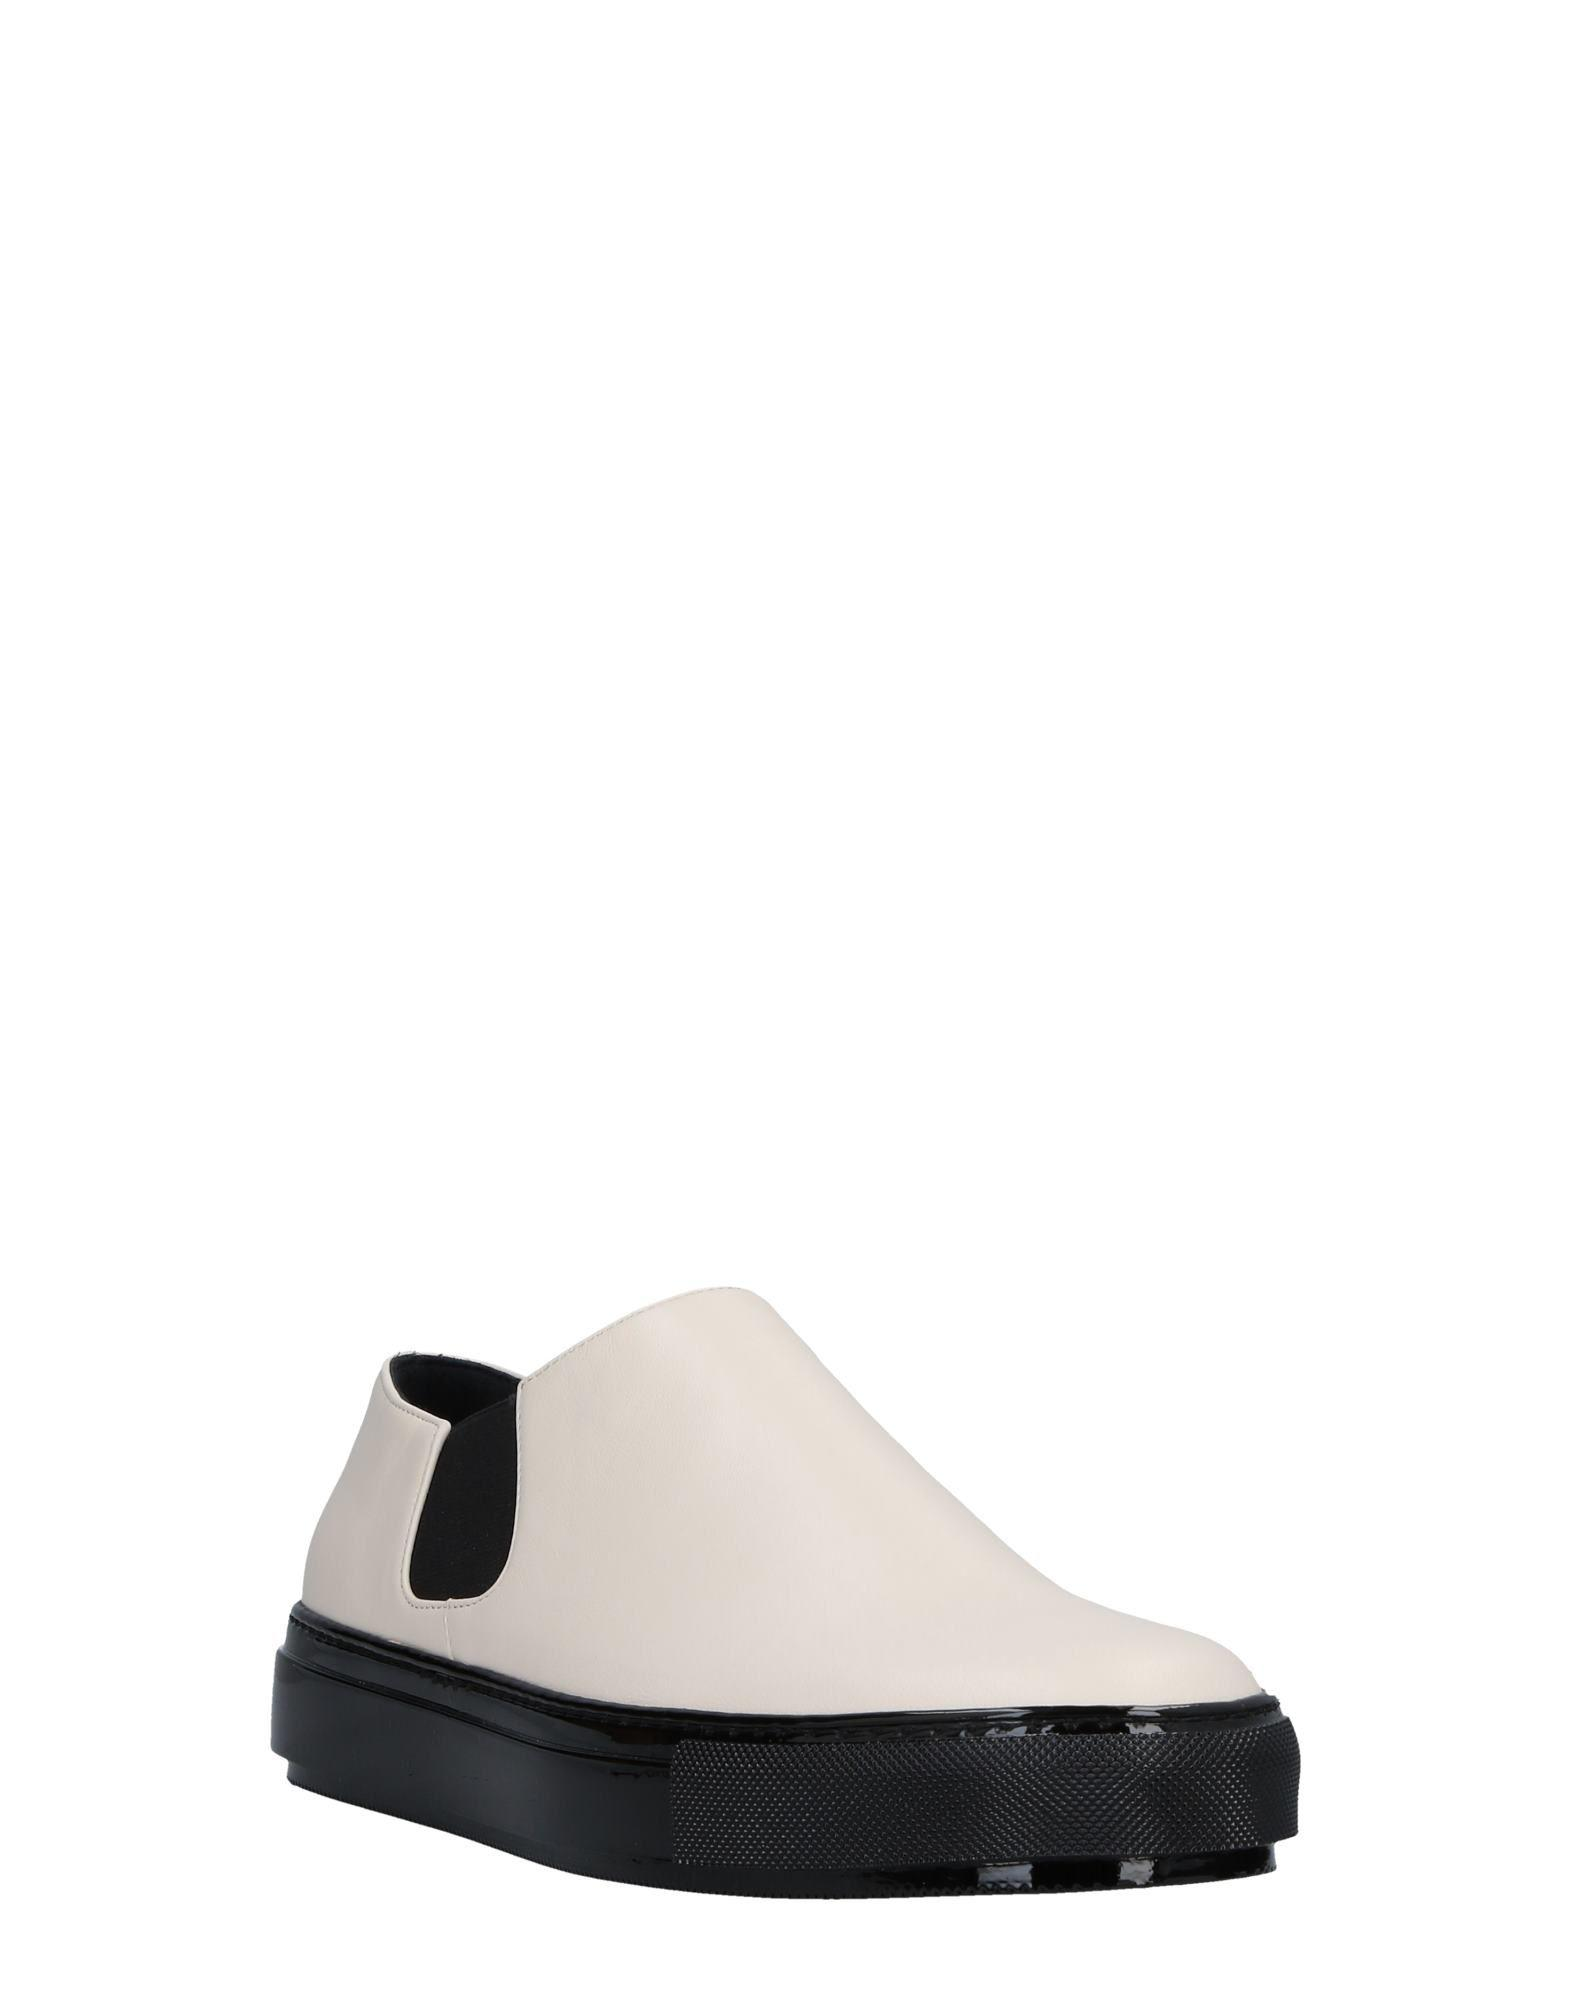 Marni Leather Low-tops & Sneakers in Ivory (White)